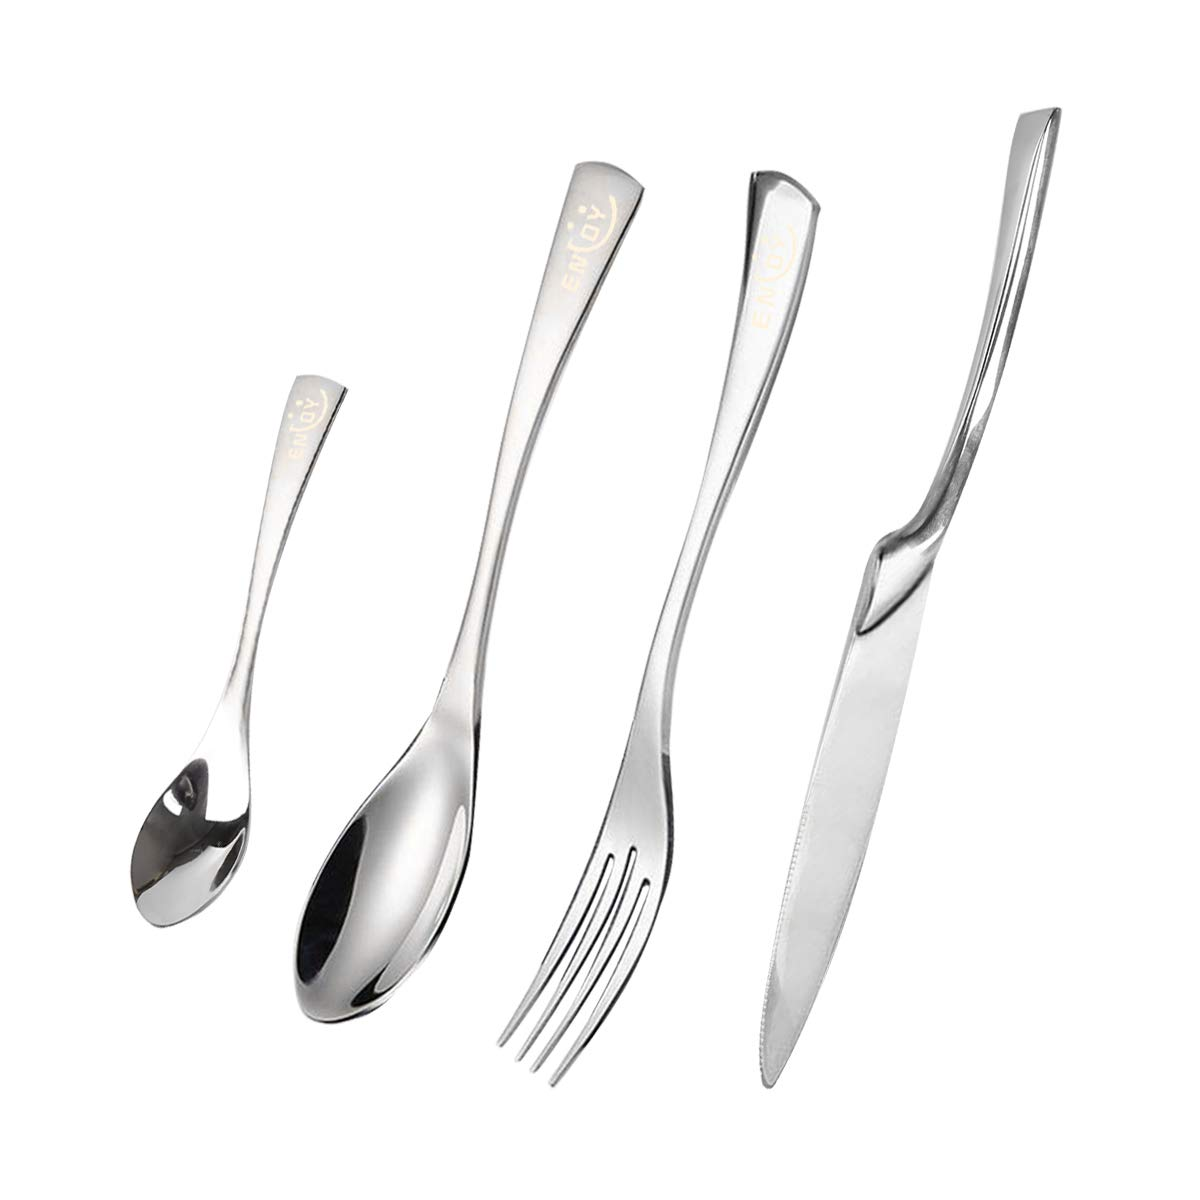 Silverware Set, Flatware Cutlery Set Stainless Steel Modern Sleek Design Utensils Service for 4, Durable 16-Piece Tableware Set with Knife, Fork and Spoons for Camping, Restaurant and Everyday Use